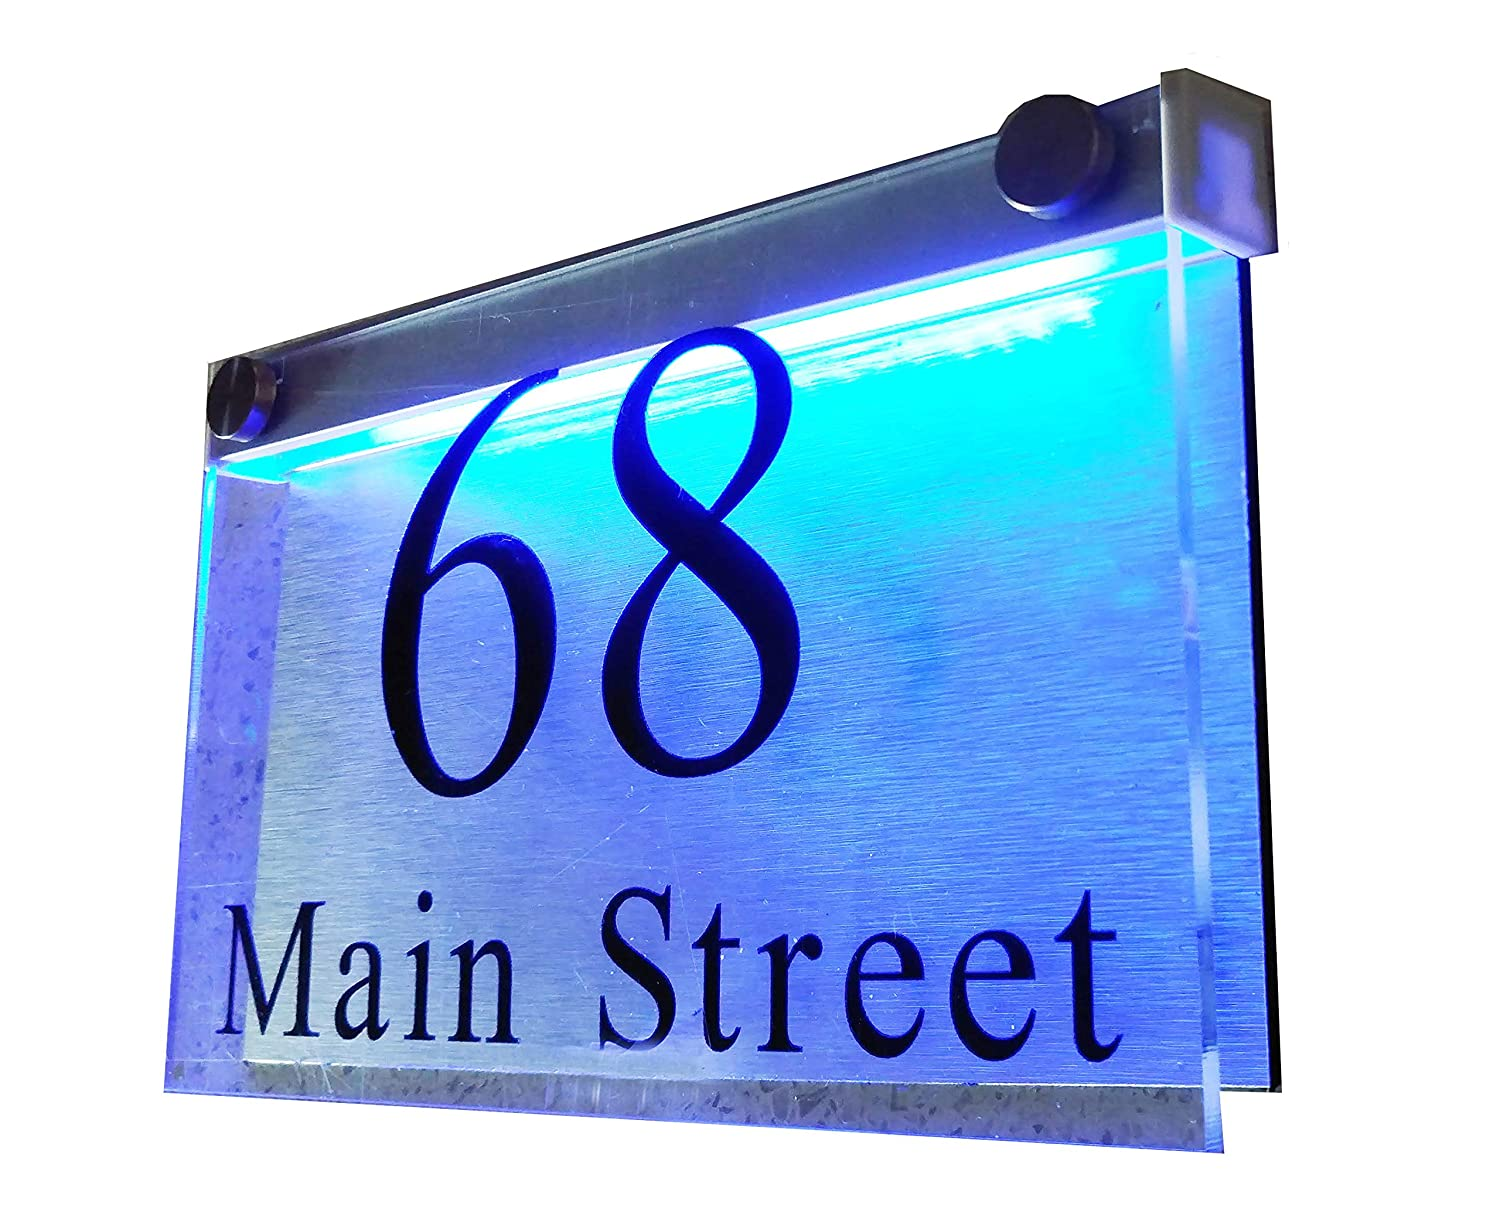 Thedisplaydeal led illuminated modern house numbers address plaque 8x5x1 rectangle clear acrylic and brushed aluminum background double panel rectangle